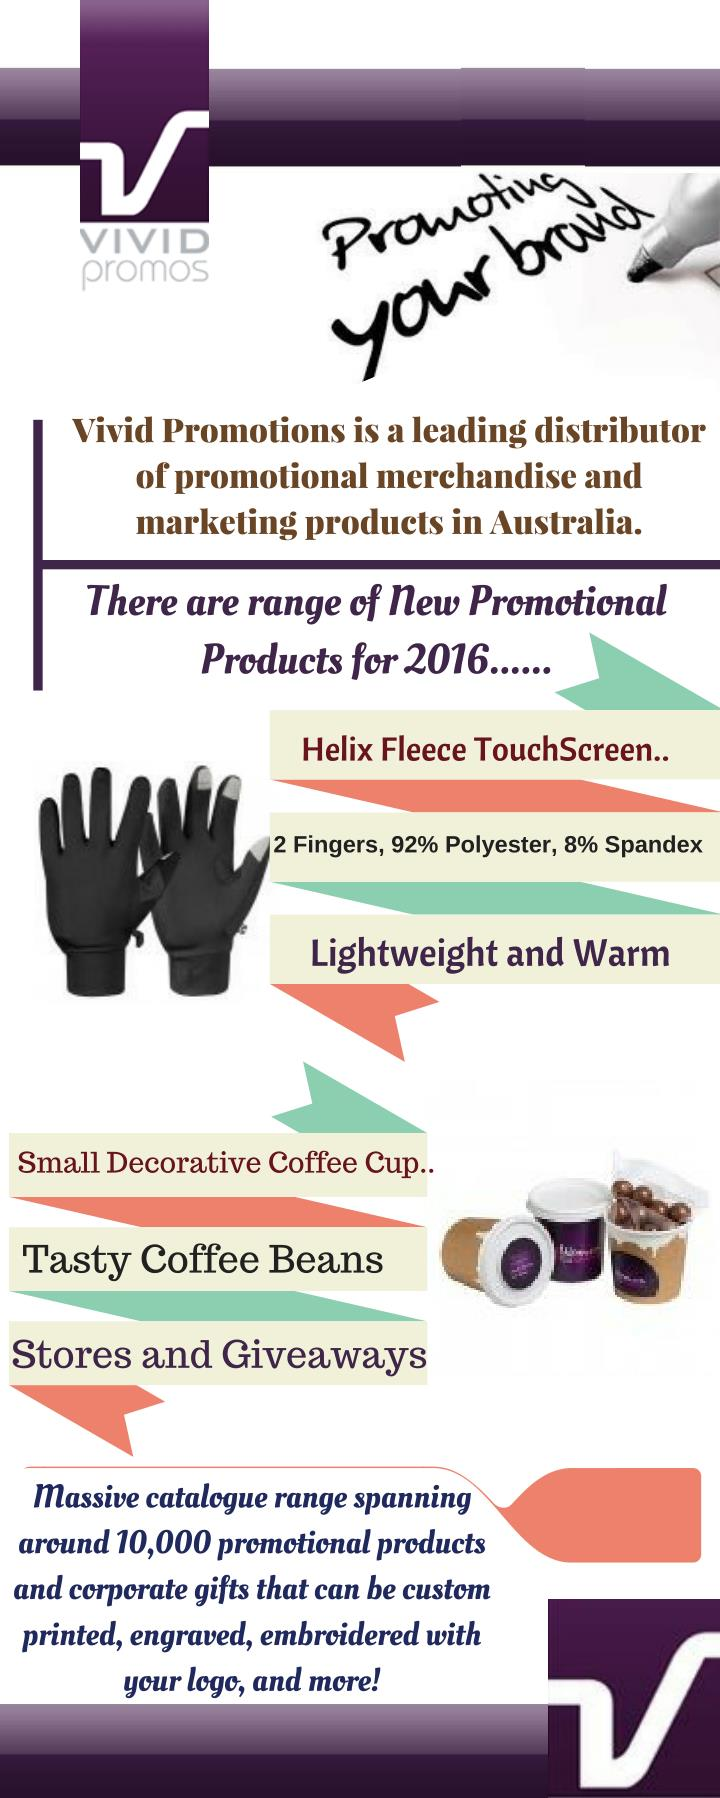 Vivid Promotions is a leading distributor